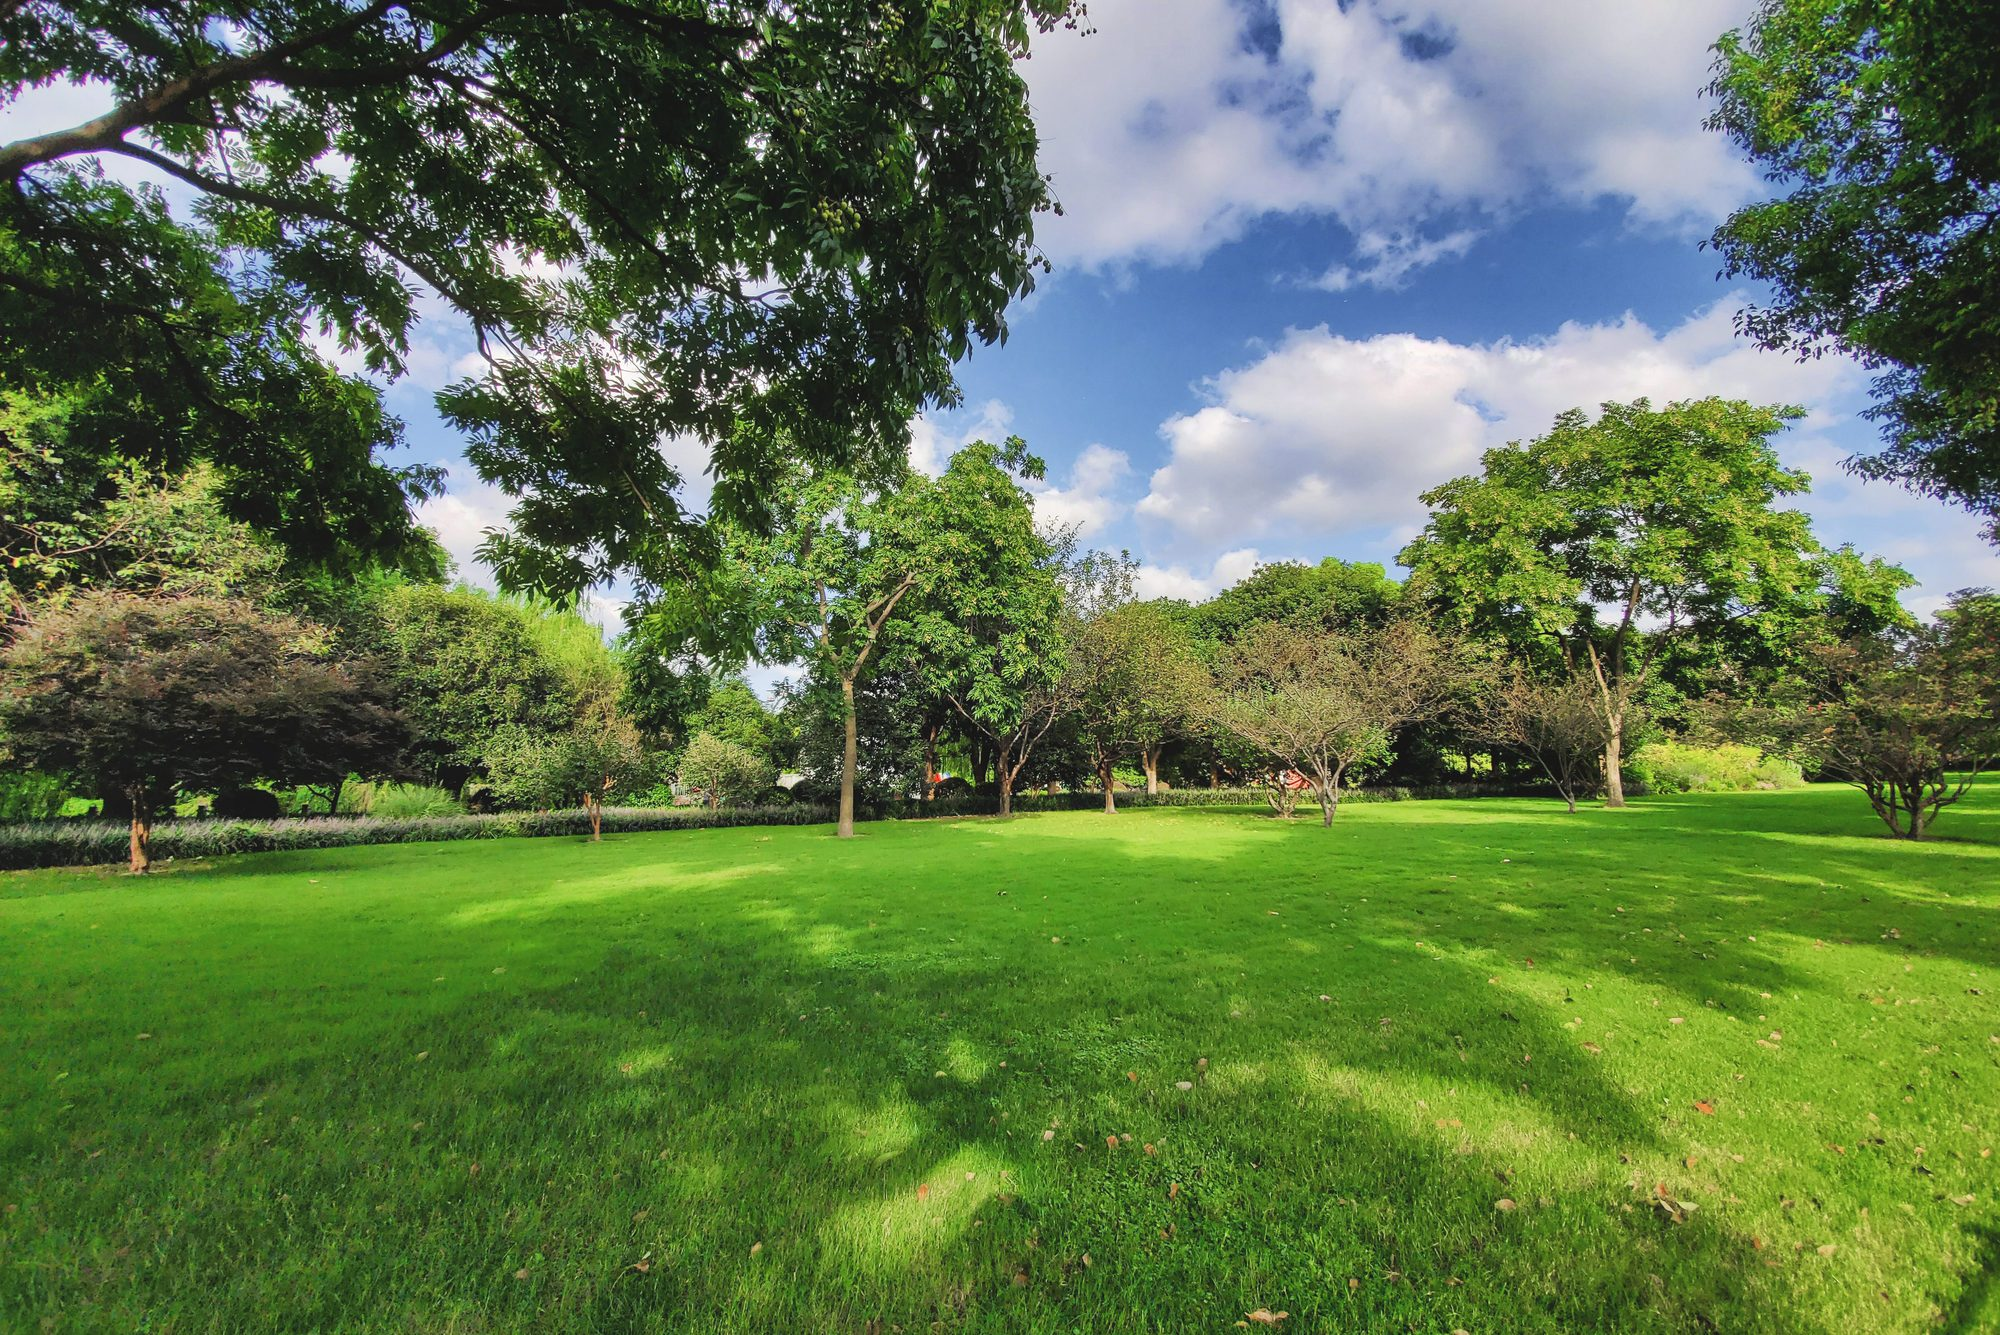 Lawn under the blue sky and white clouds in Hangzhou, China